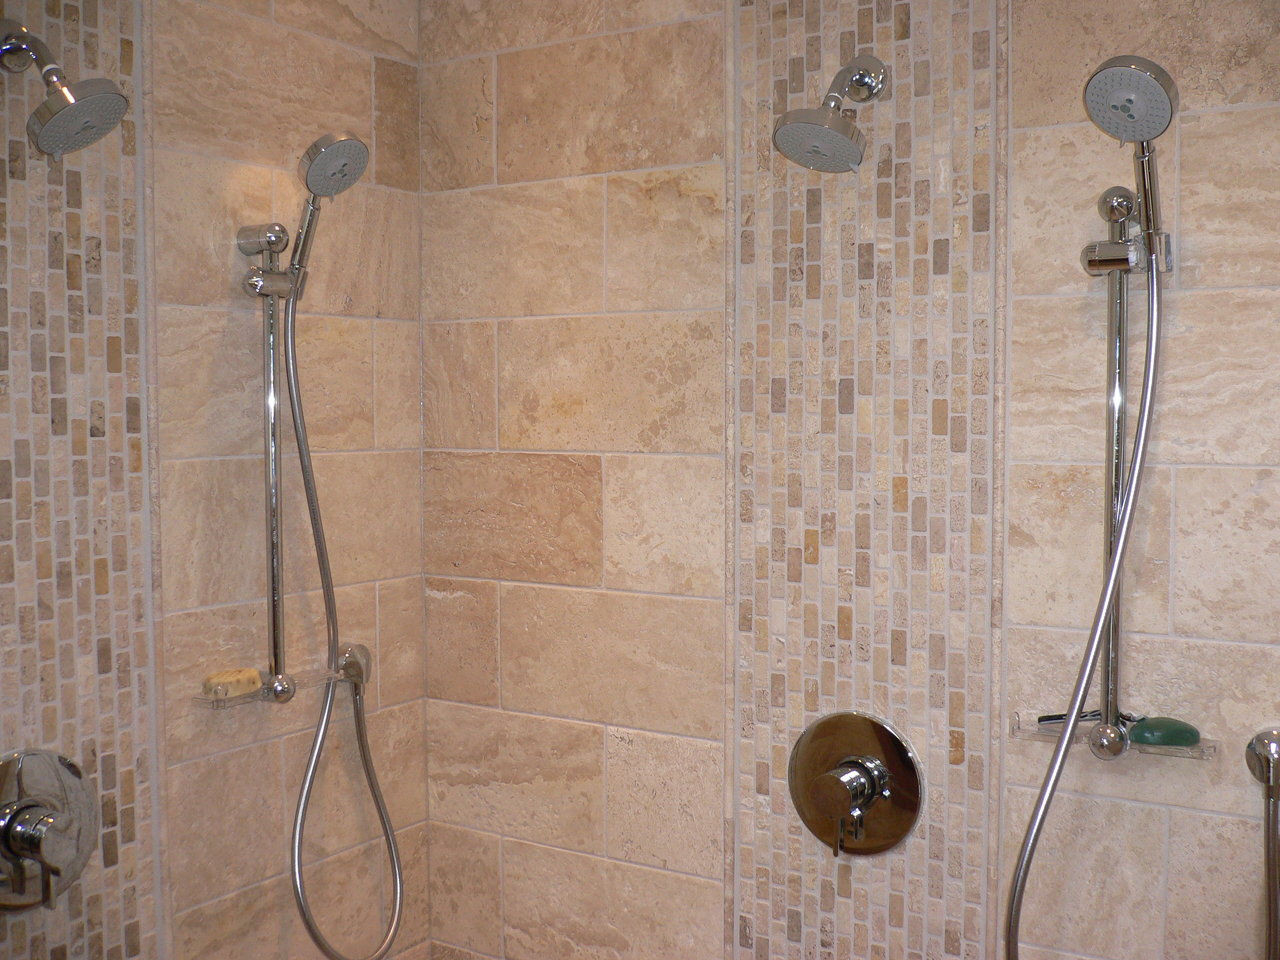 Remodeling Company Chicago Suburbs Tile Work